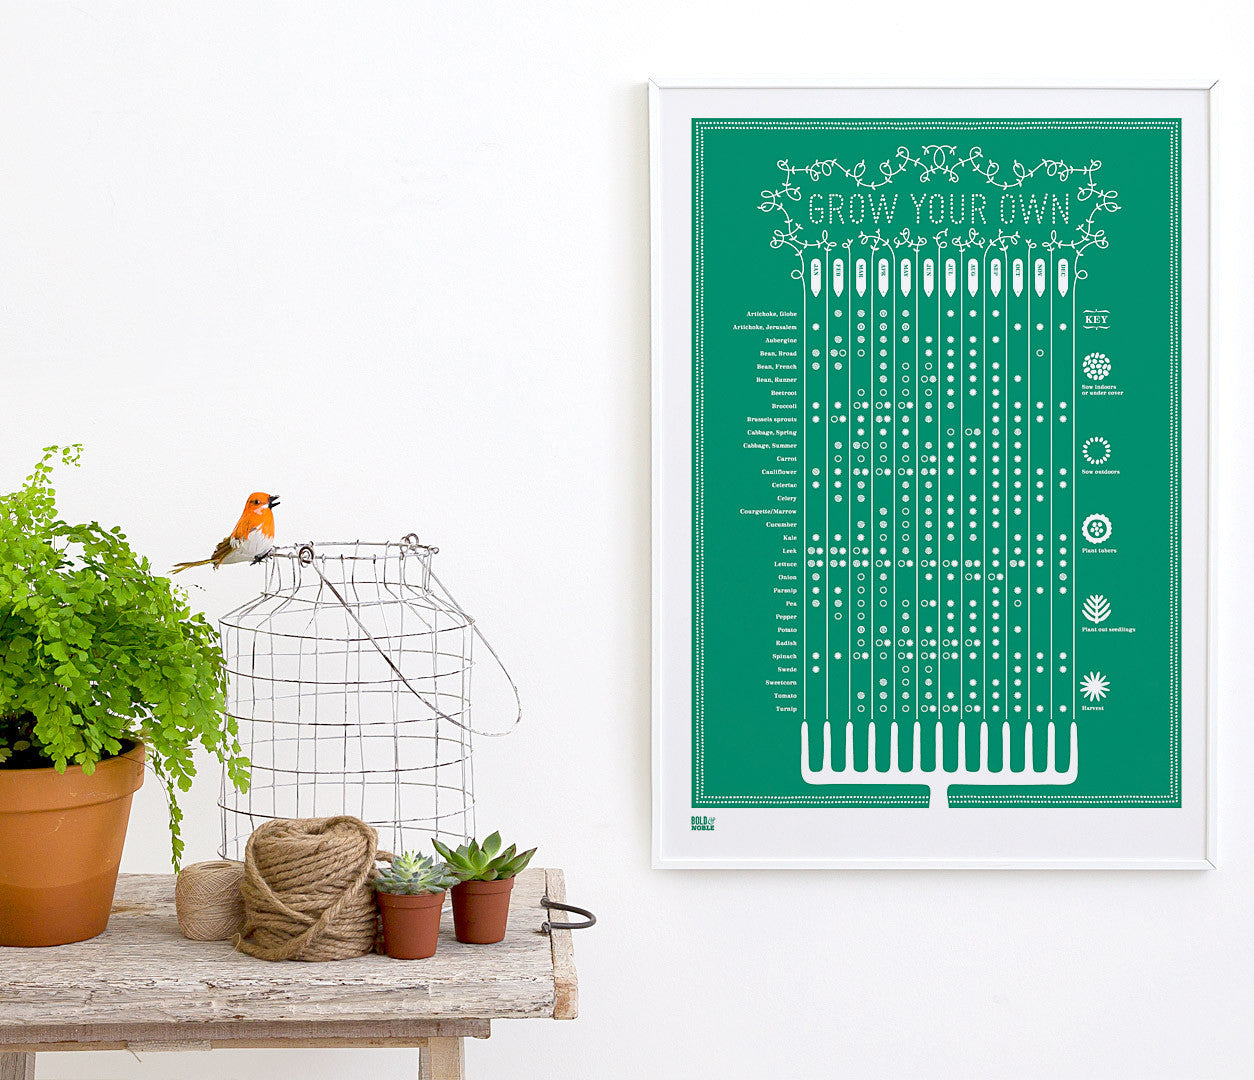 Wall Art ideas: Economical Screen Prints, Grow Your Own Planting Guide in Emerald Green